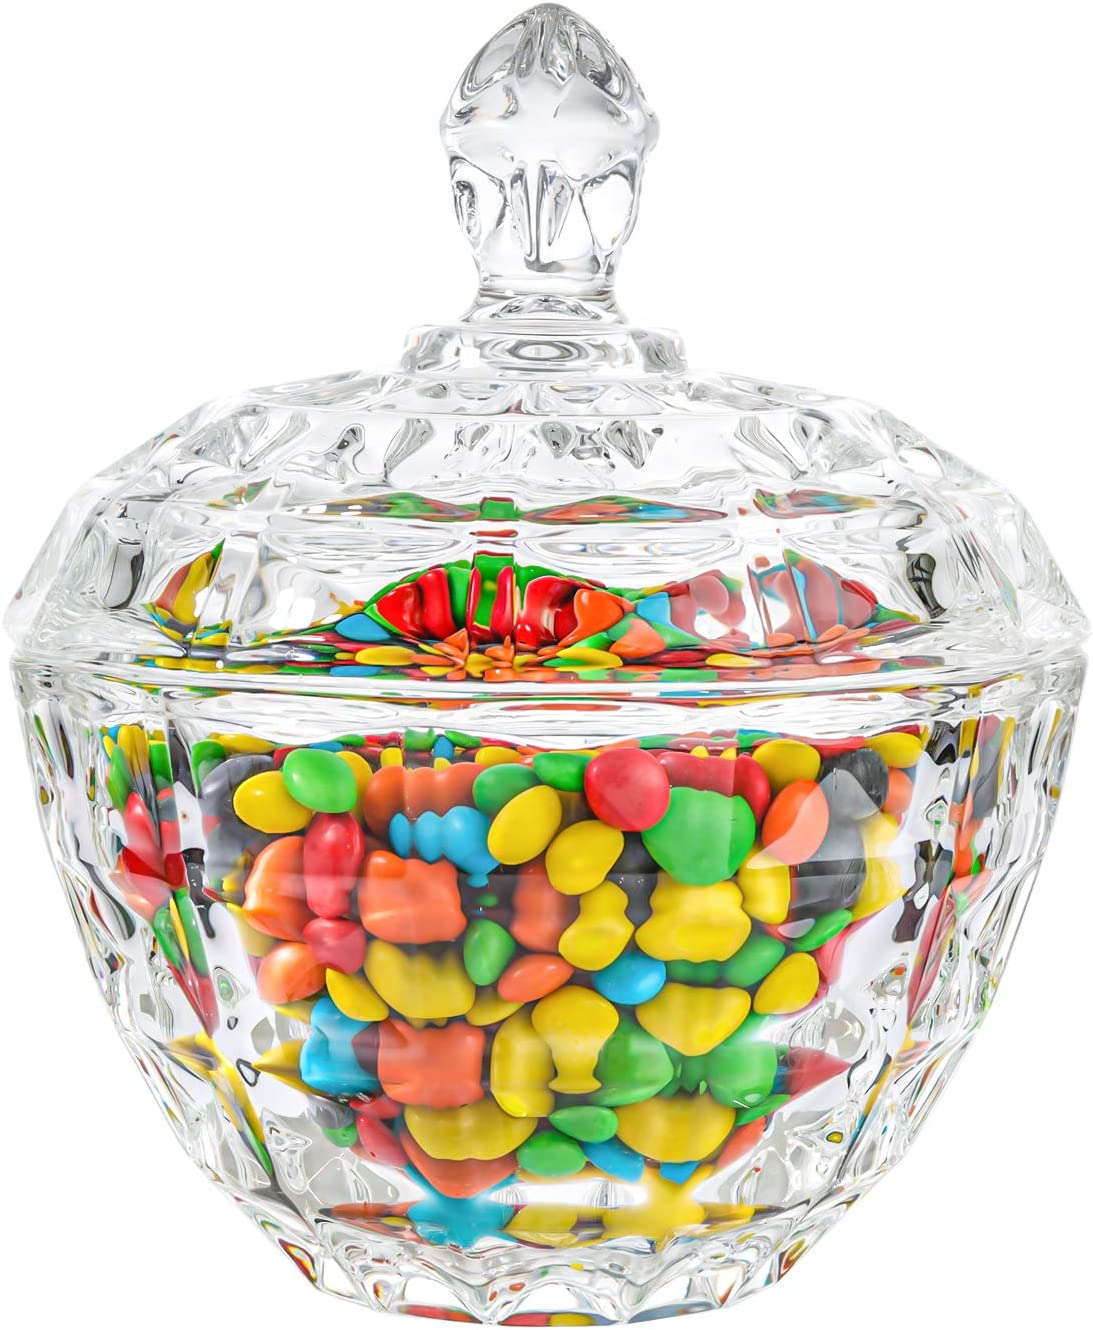 ComSaf Glass Candy Dish with Lid Decorative Candy Bowl, Crystal Covered Candy Jar for Home Office Desk, Set of 1 (Diameter:4.5 Inch)